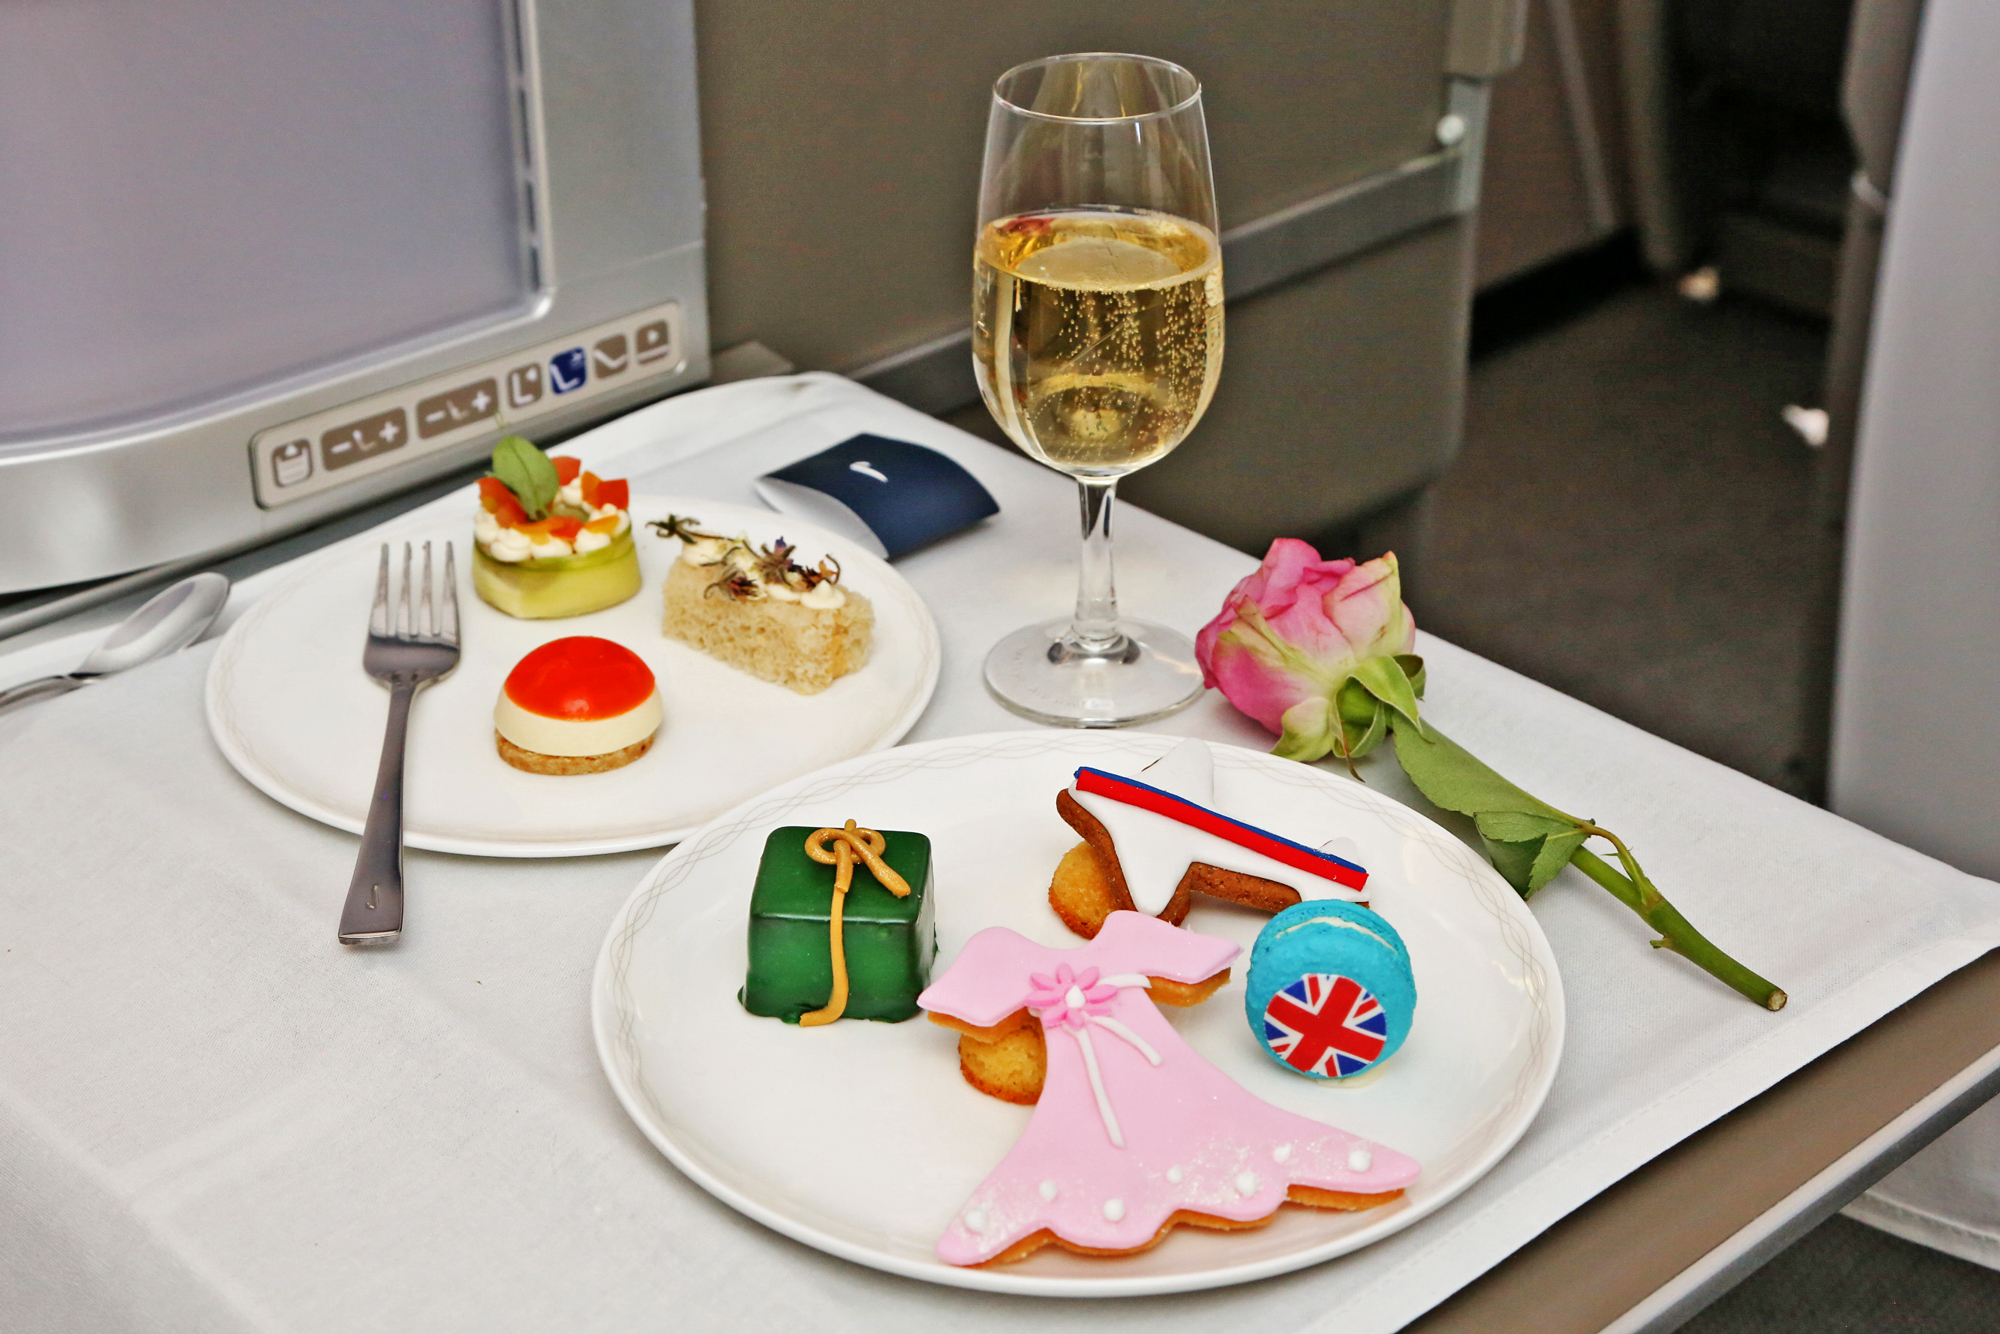 The meal prepared by celebrity Chef David Higgs on board the new British Airways Airbus A380 on February 6, 2014 in Johannesburg, South Africa.